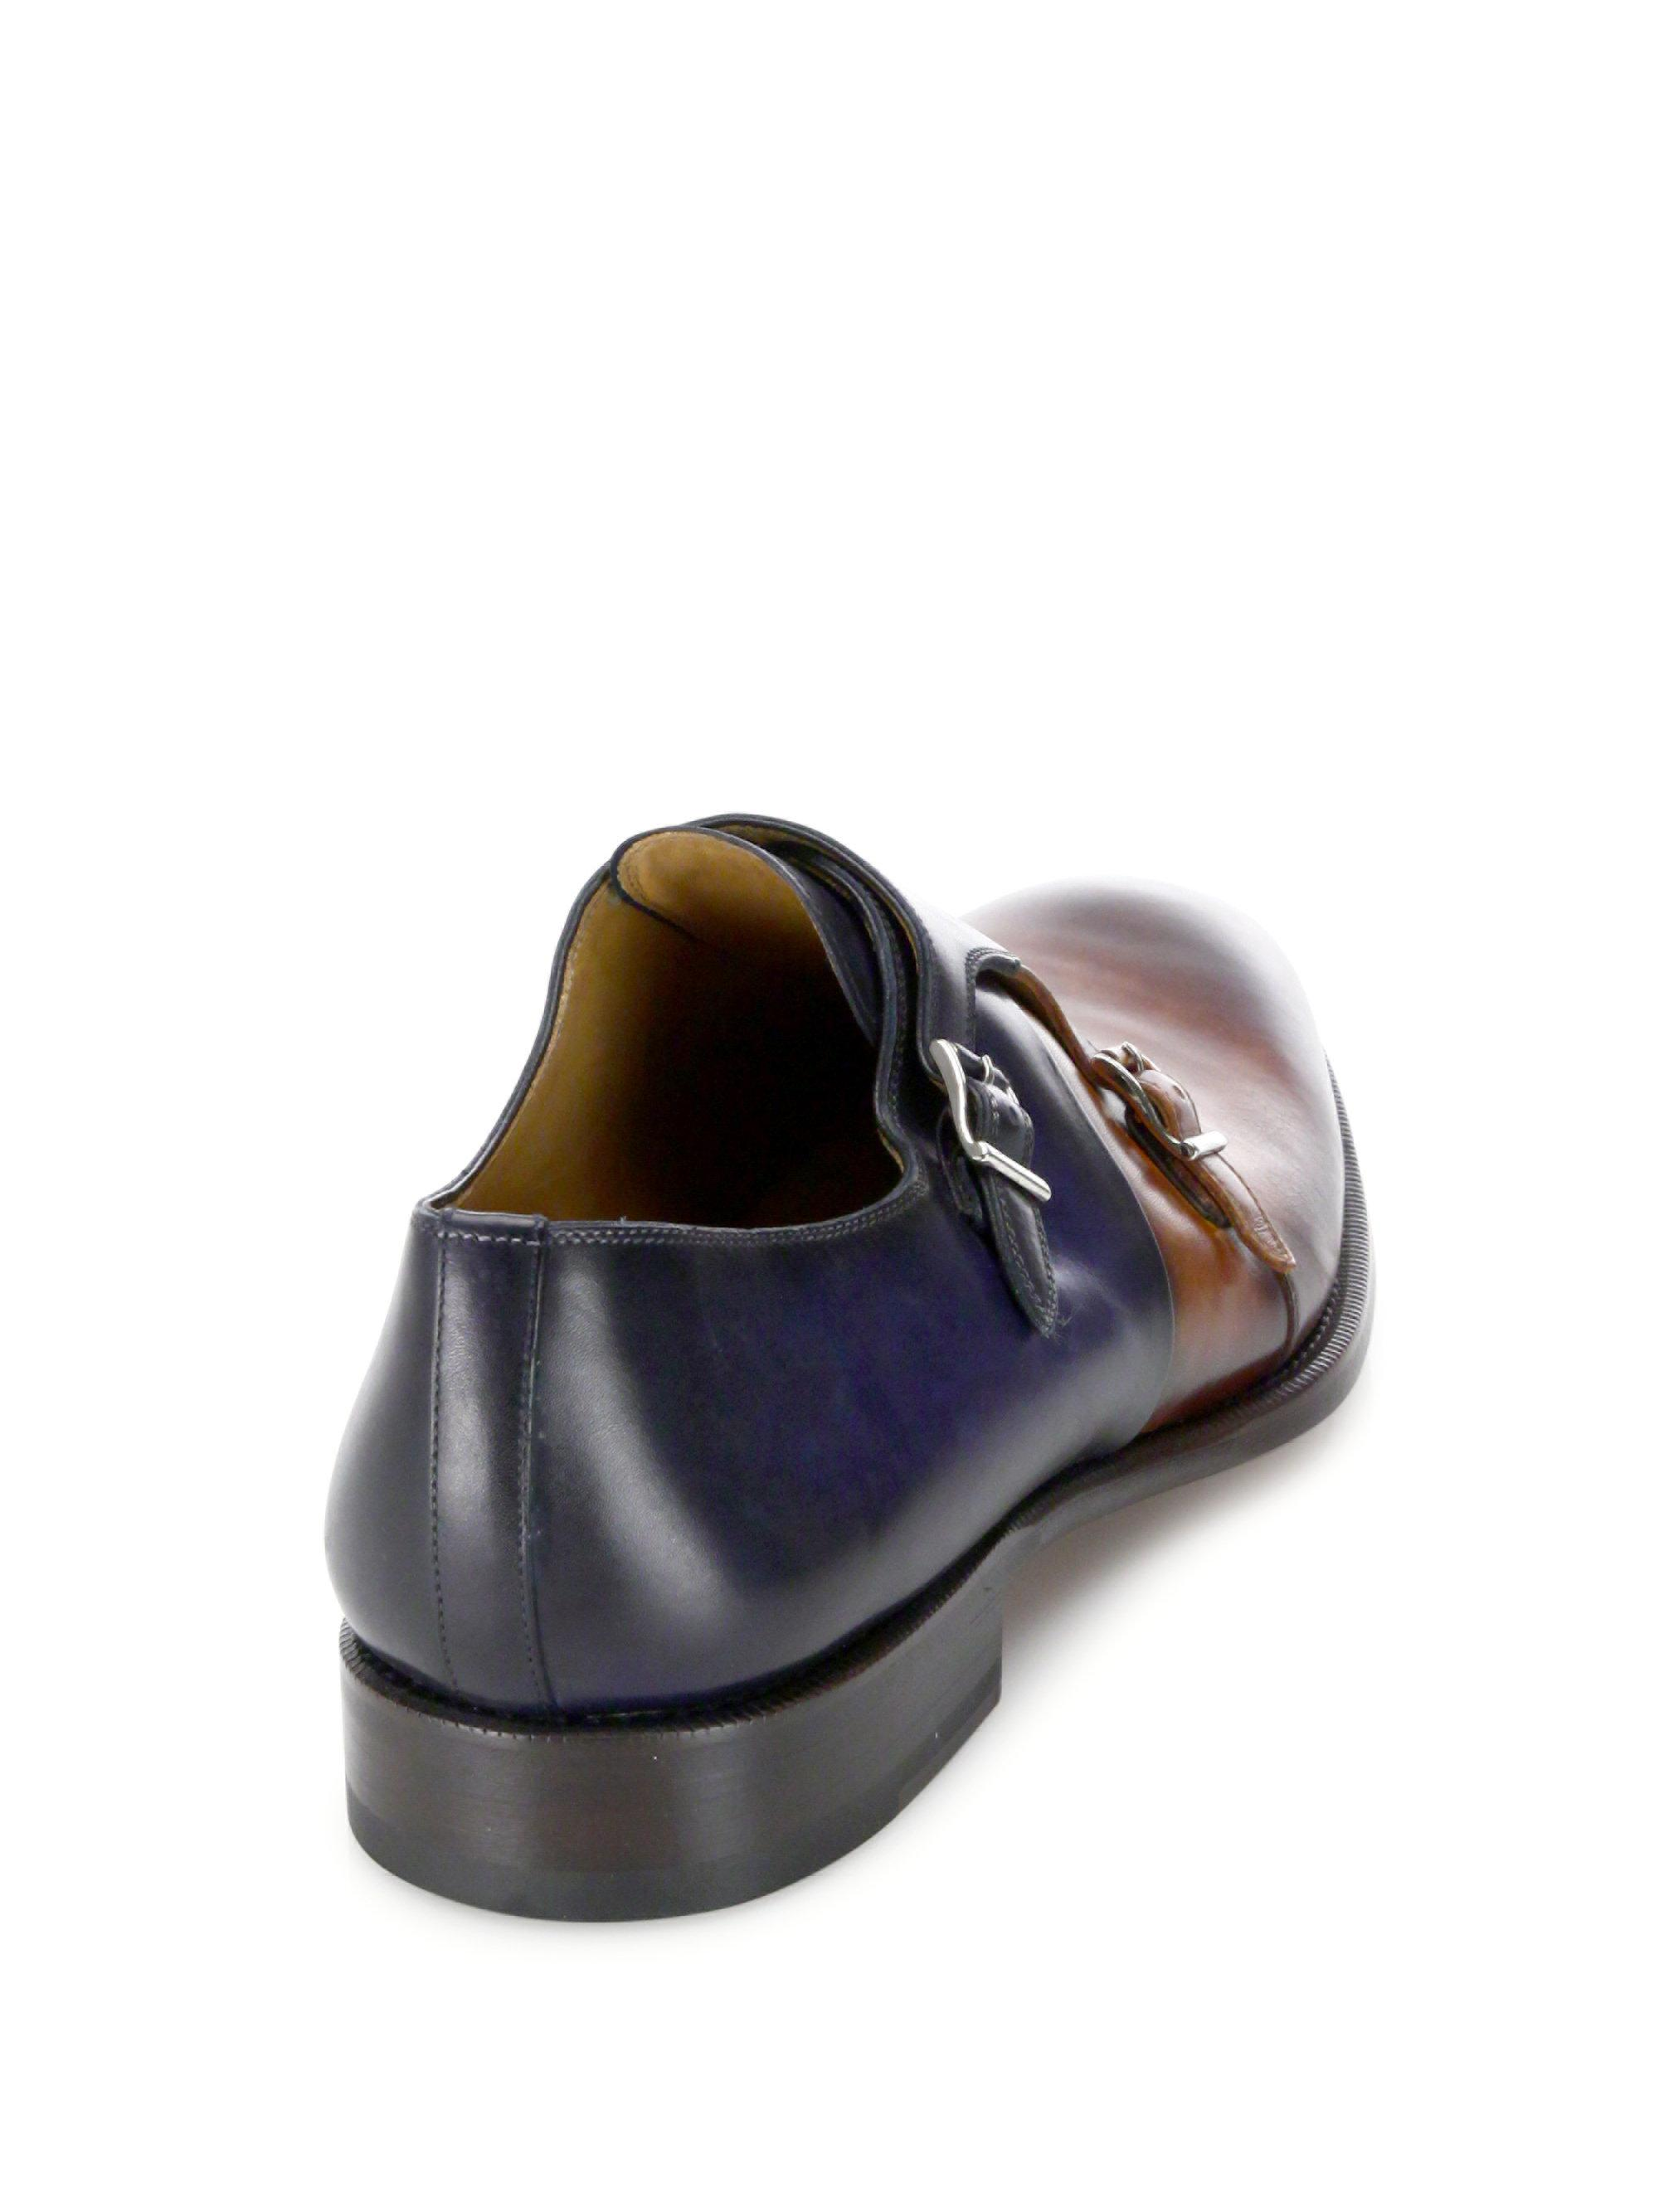 Saks Fifth AvenueCOLLECTION BY MAGNANNI Leather Double Monkstrap Loafers h0dyzf